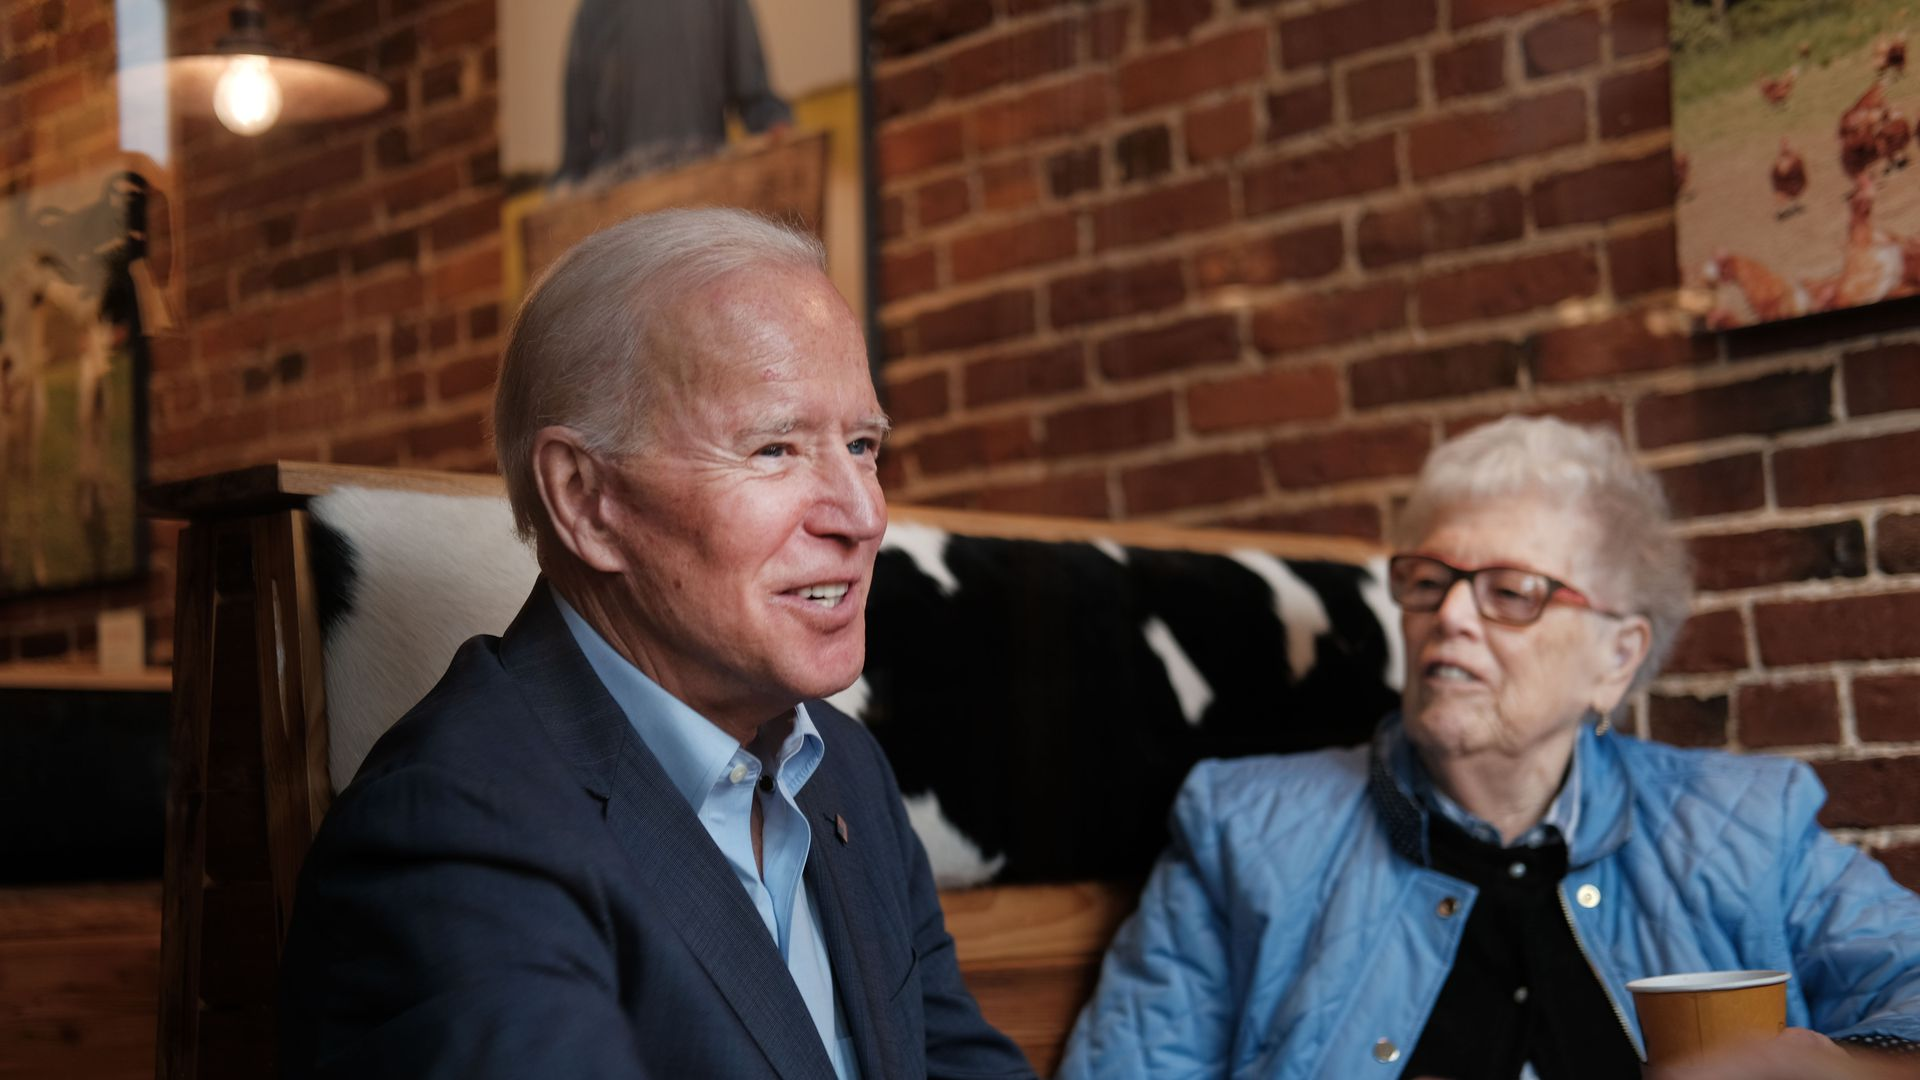 Poll: Biden leads Trump by double-digits among Pennsylvania voters